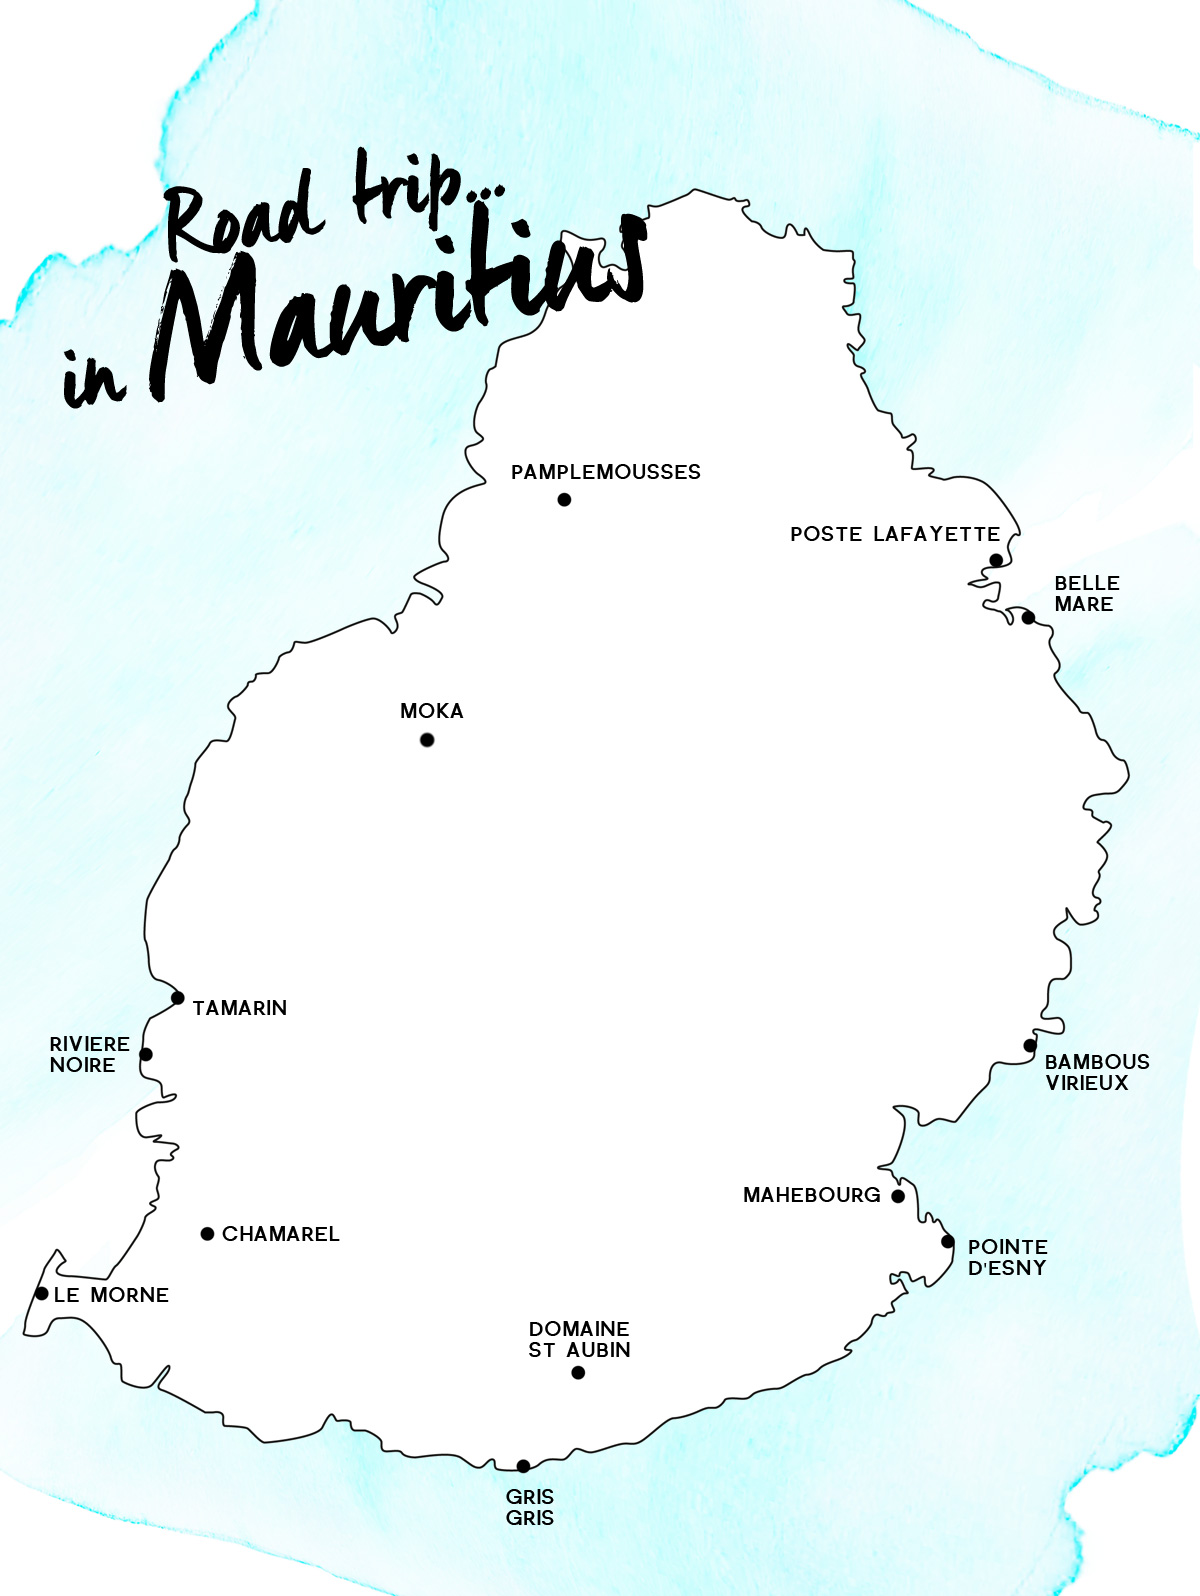 Itinerary of a road trip in Mauritius